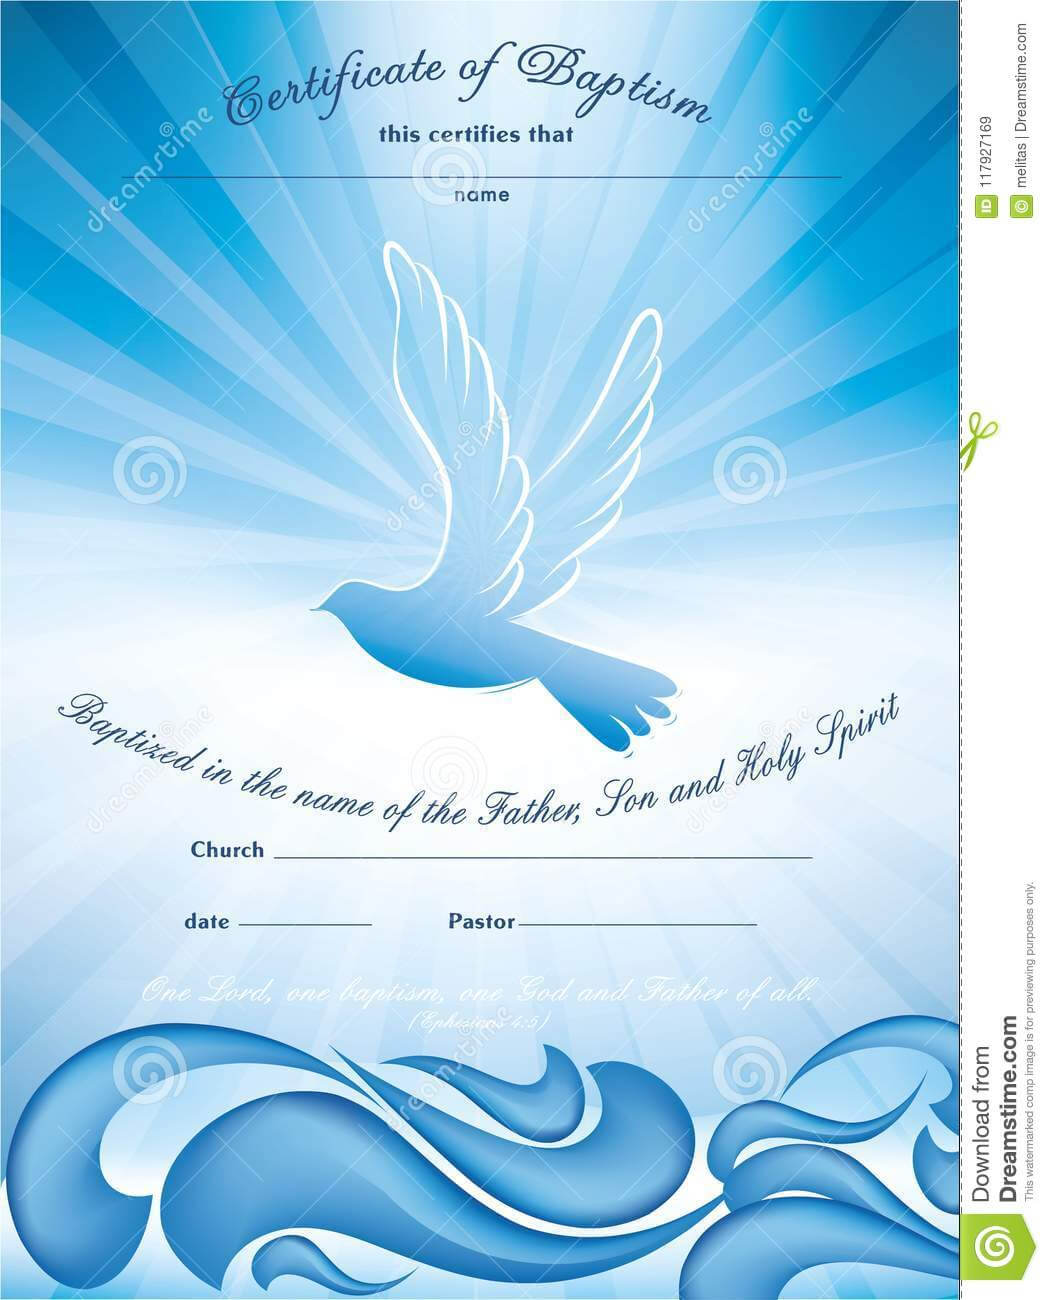 Certificate Baptism Template. With Waves Of Water And Dove Intended For Christian Baptism Certificate Template